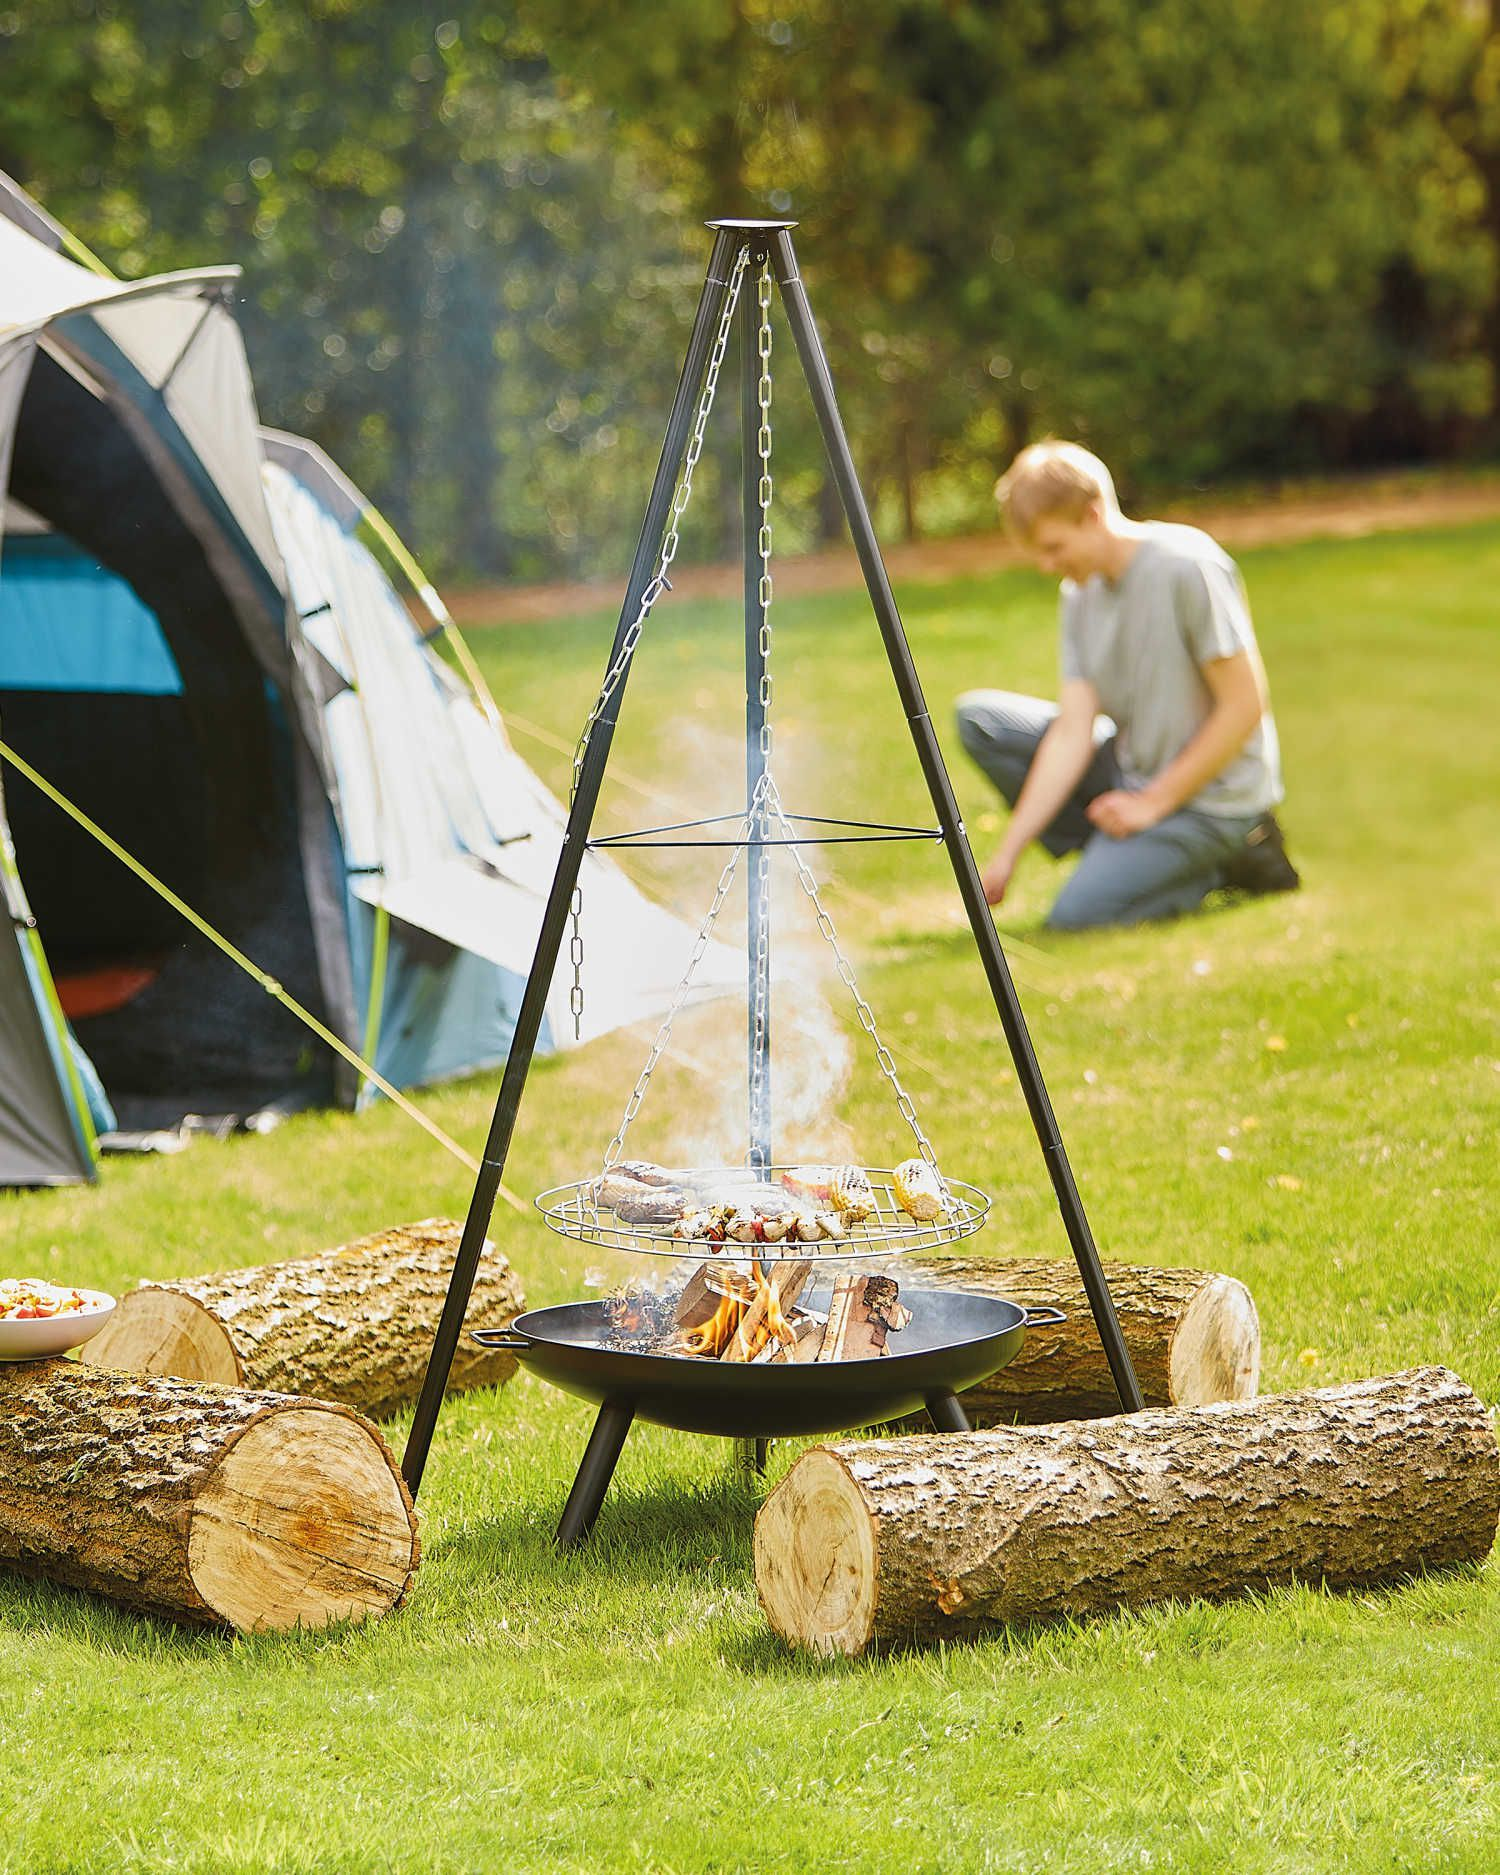 Camping Fire Pit >> 5 Aldi Special Buys For Your Garden This Summer